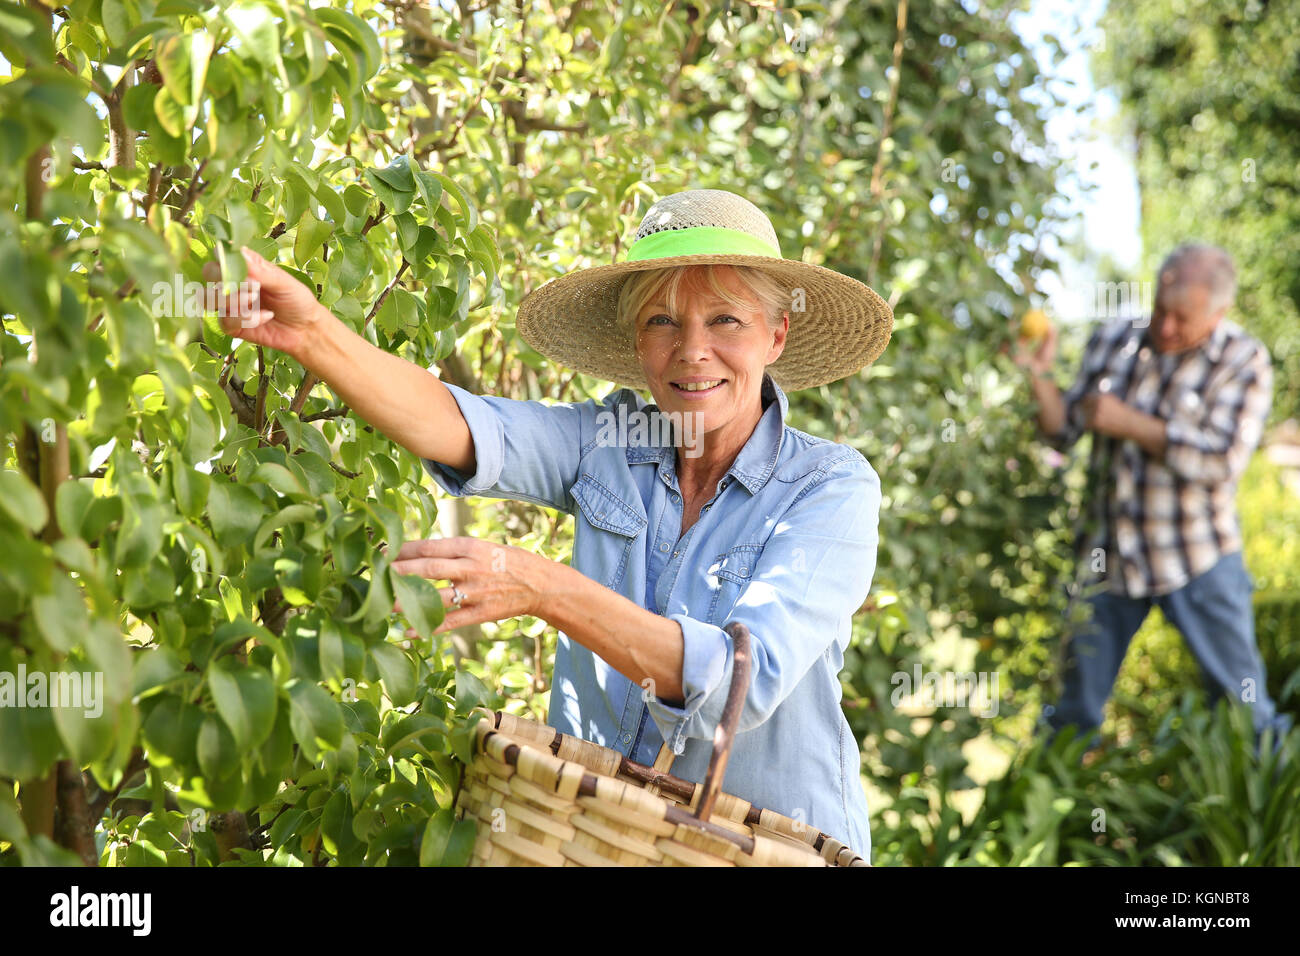 Senior woman picking pears from tree - Stock Image